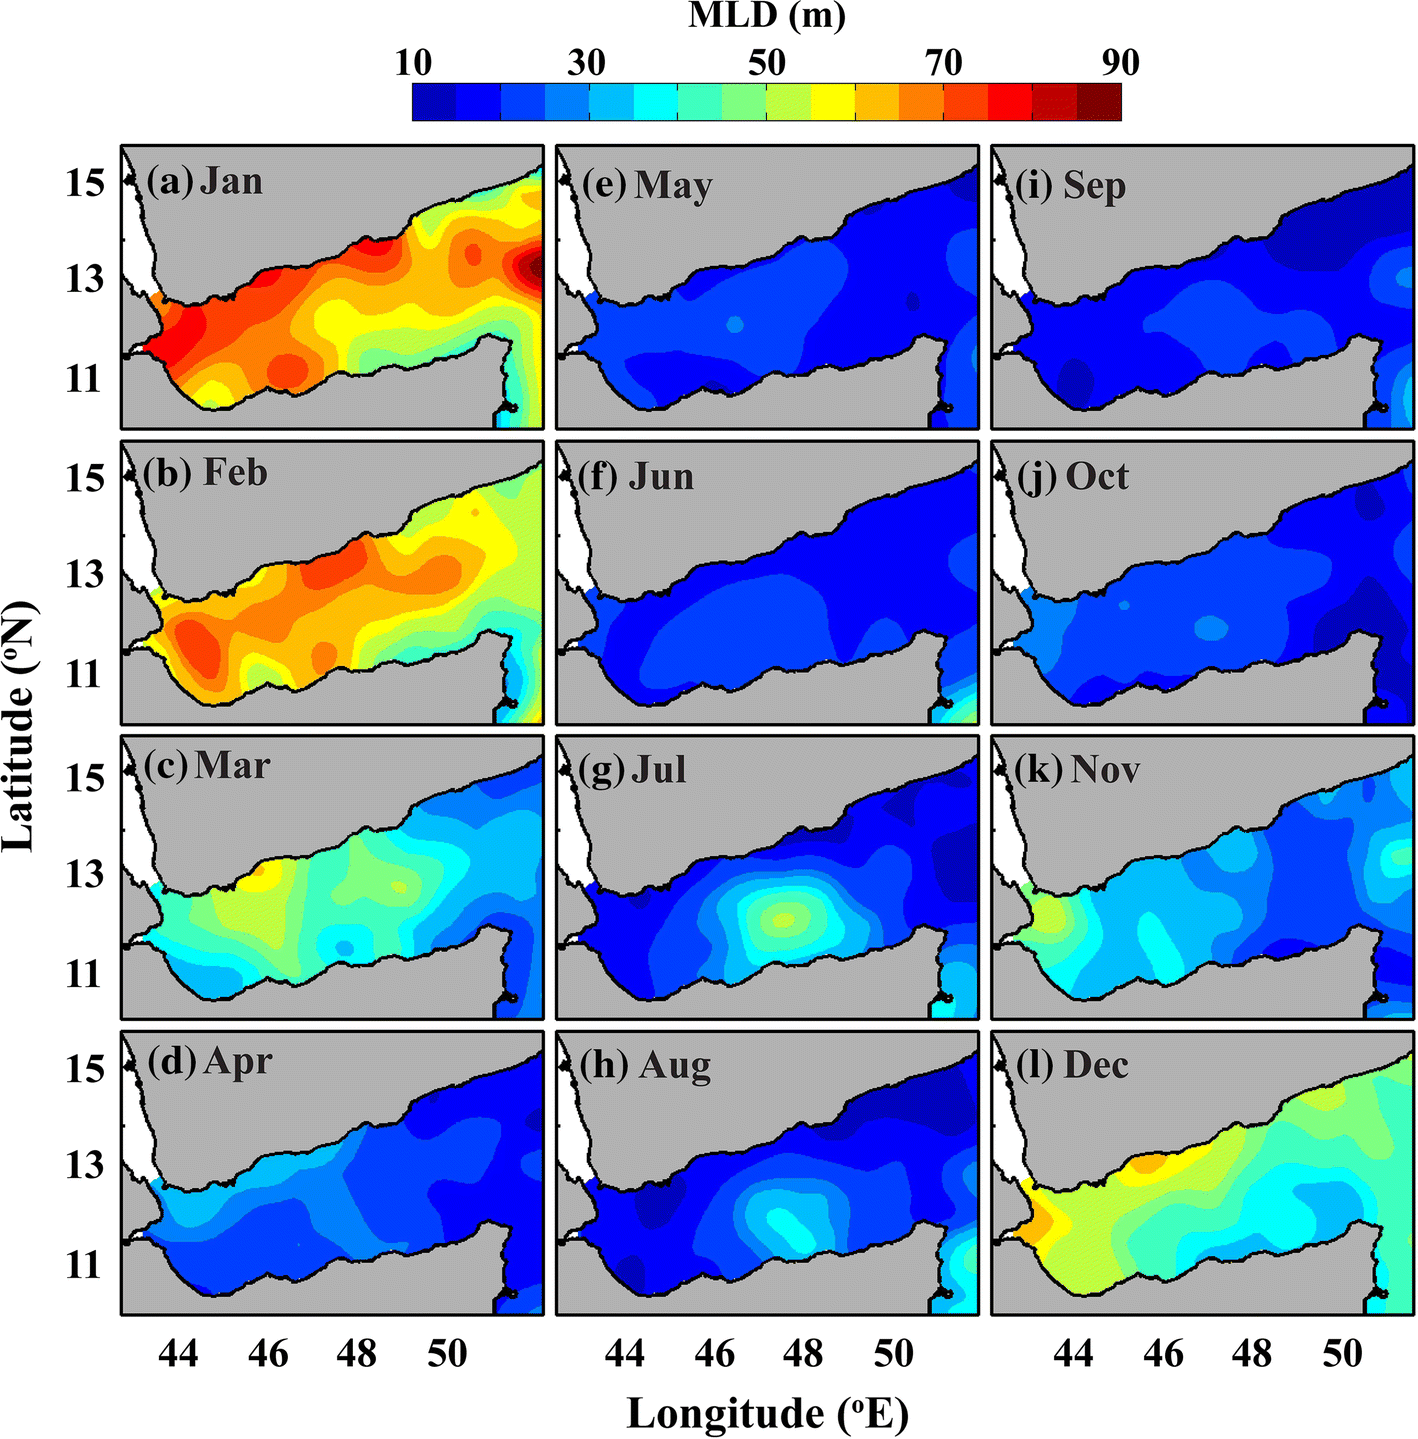 Climatology of mixed layer depth in the Gulf of Aden derived